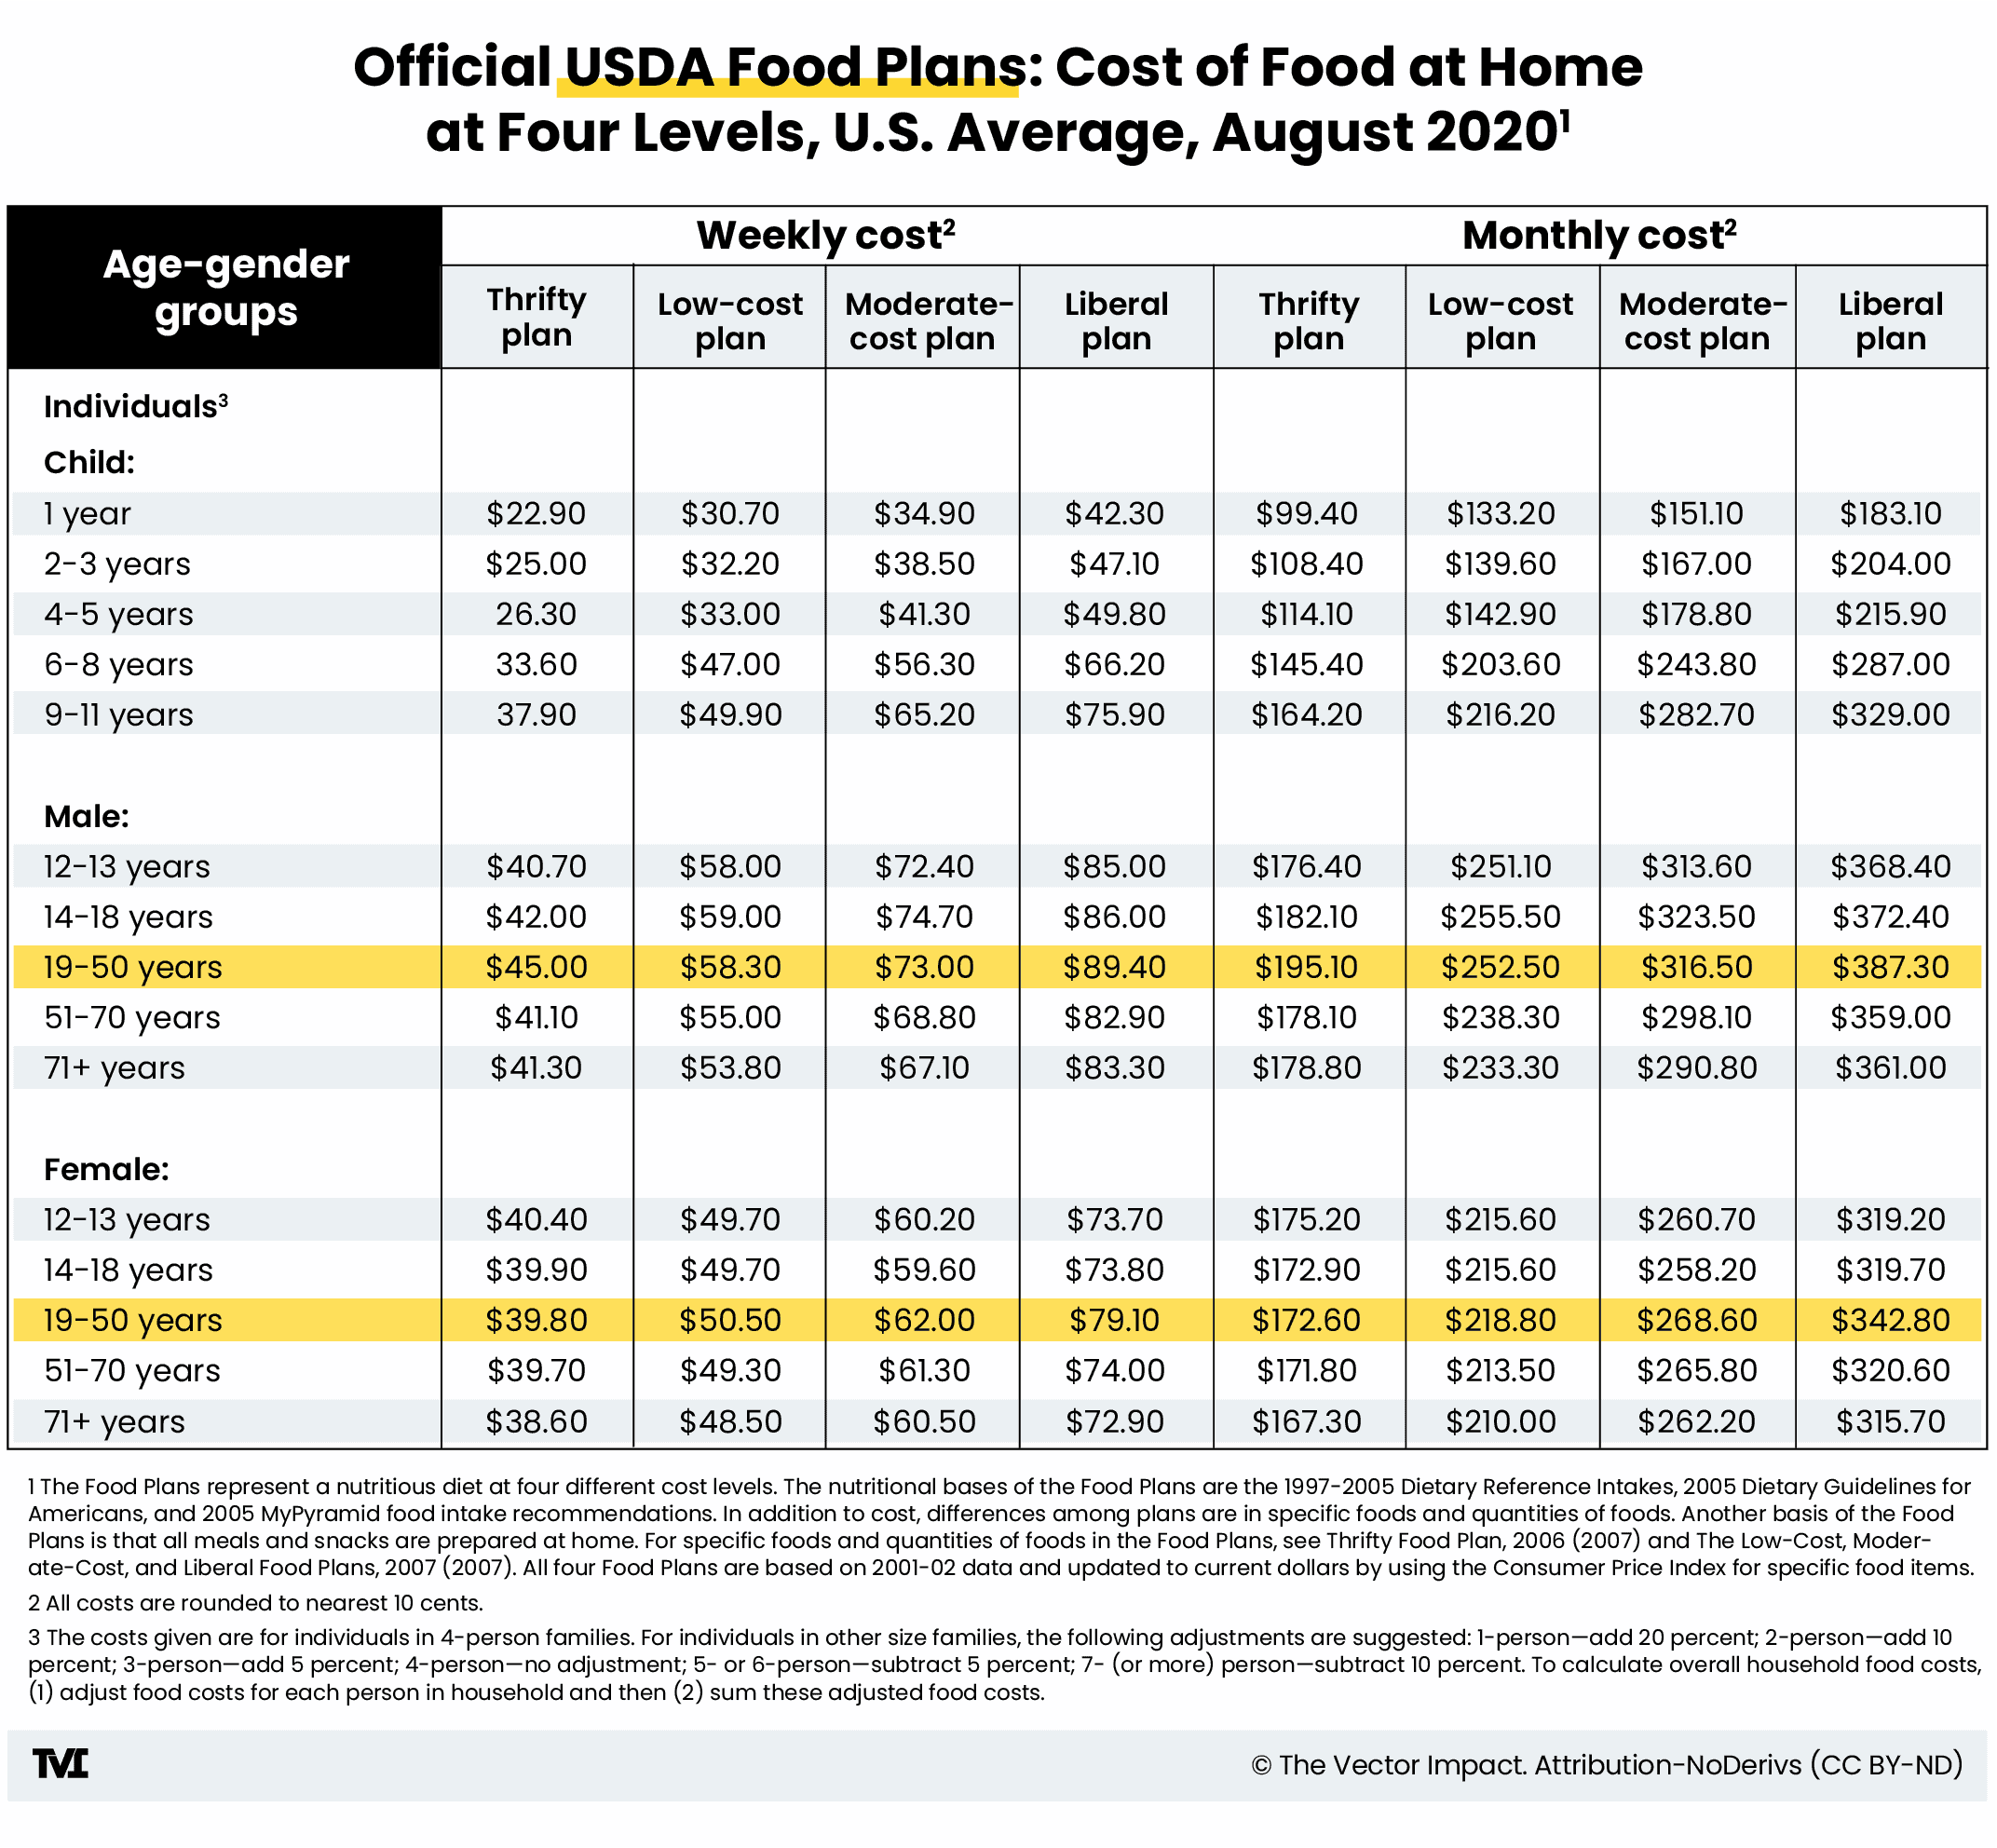 Official USDA Food Plans: Cost of Food at Home at Four Levels, U.S. Average, August 2020